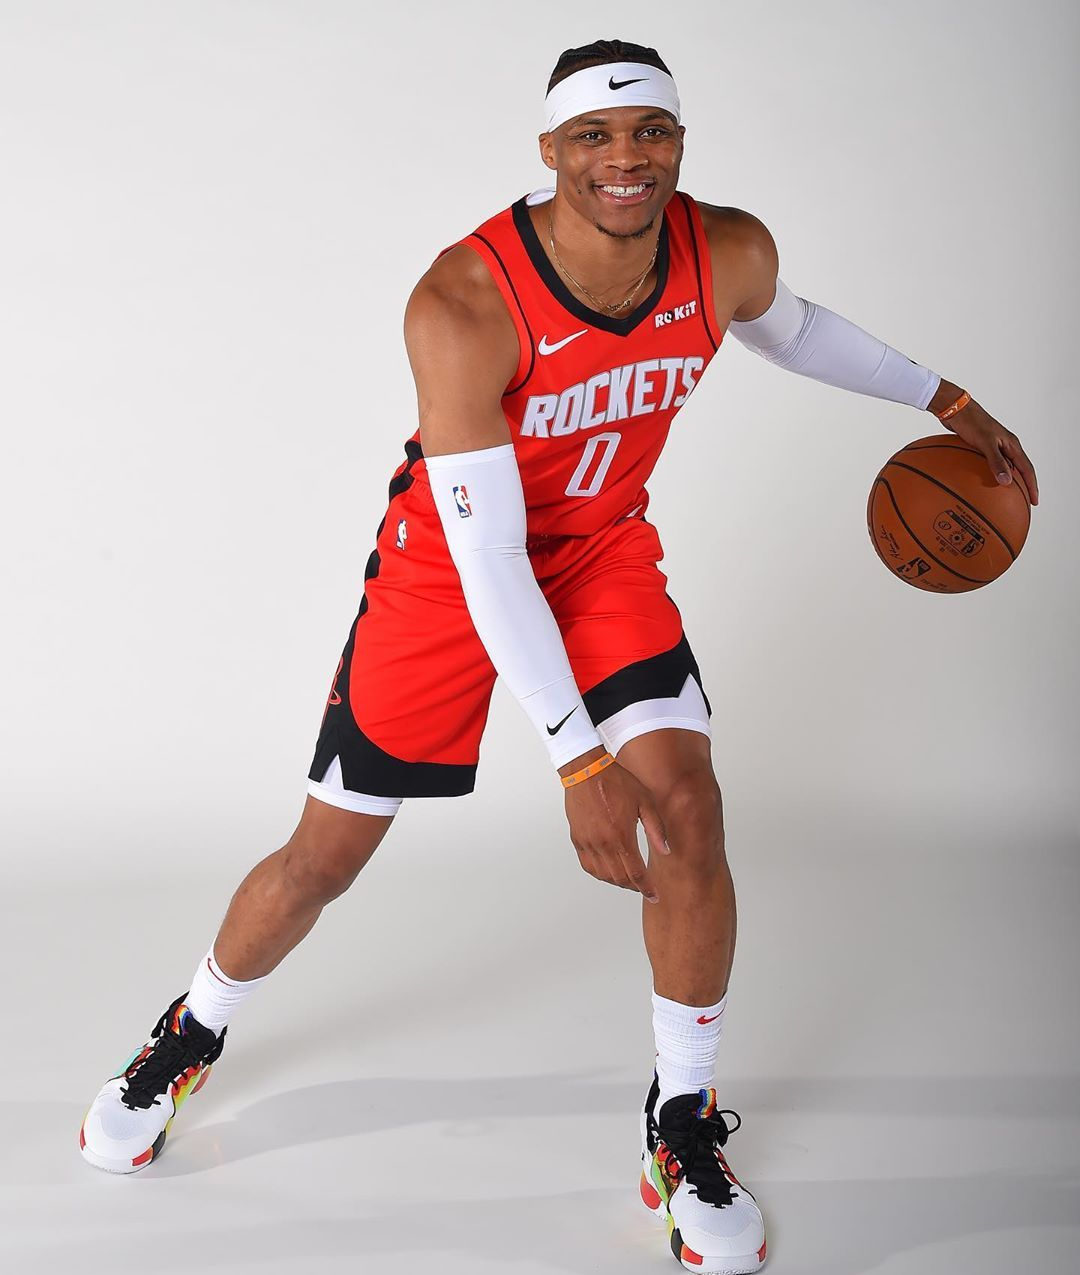 Image May Contain One Or More People People Playing Sports And Shoes Basketball Players Nba Russell Westbrook Westbrook